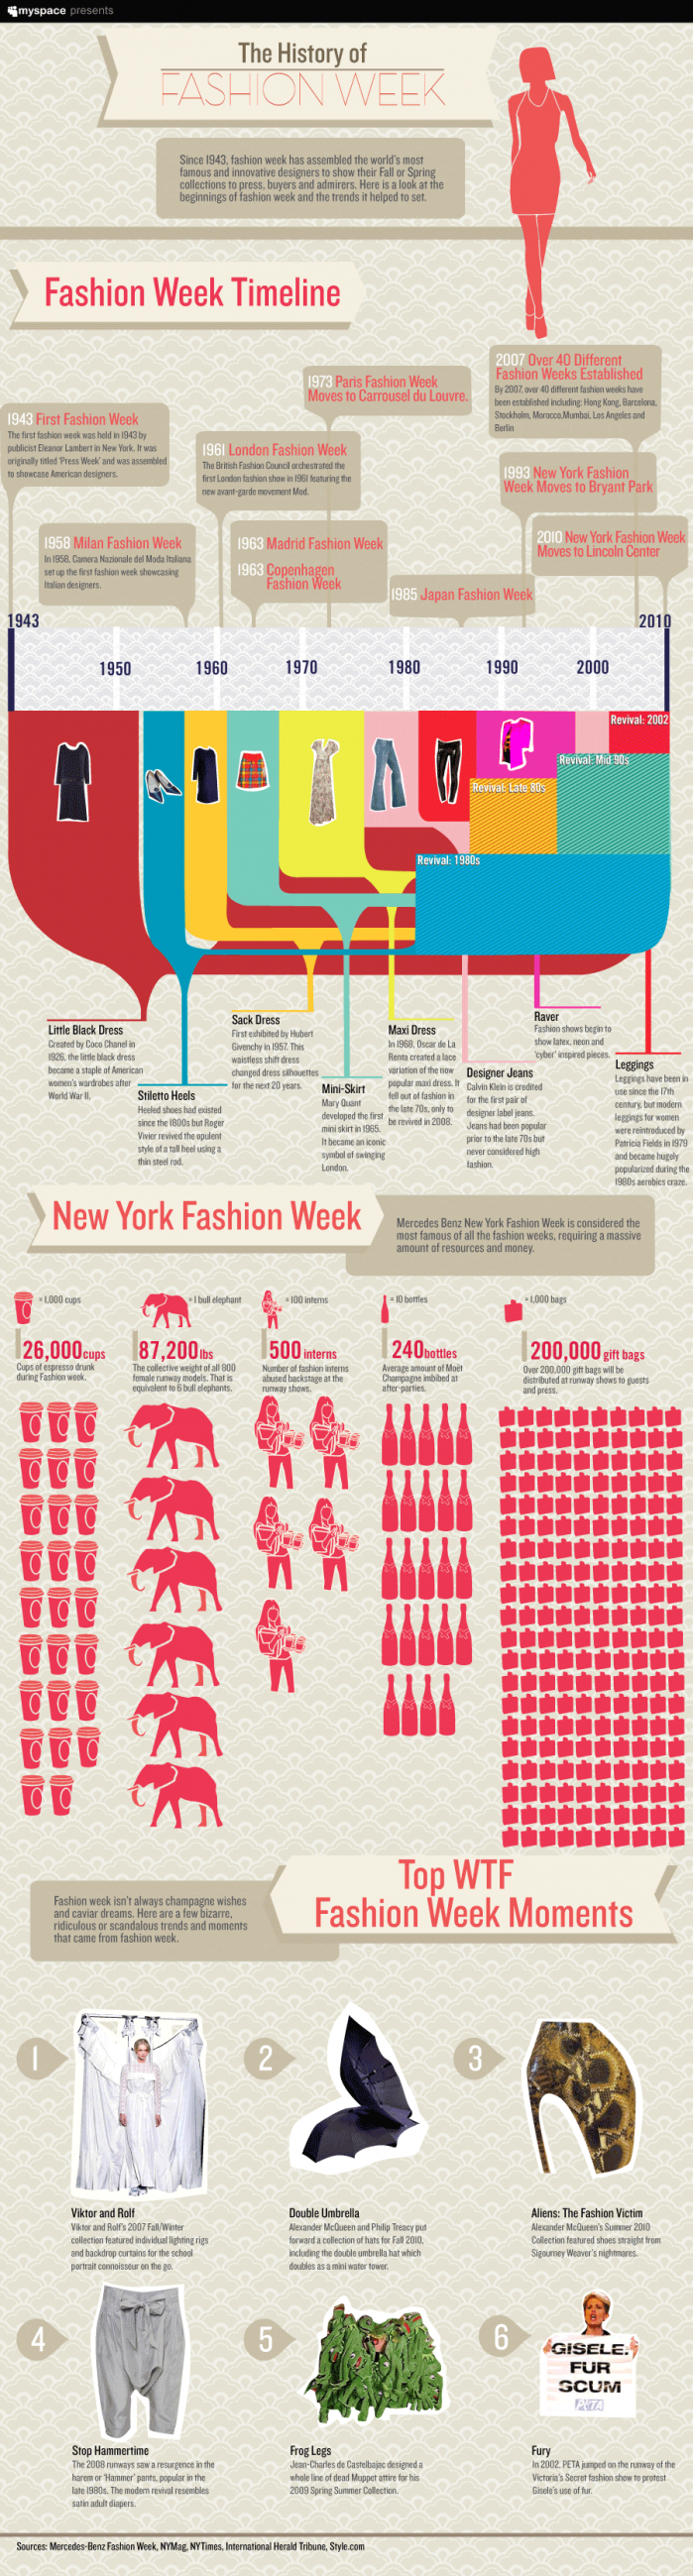 The History of Fashion Week